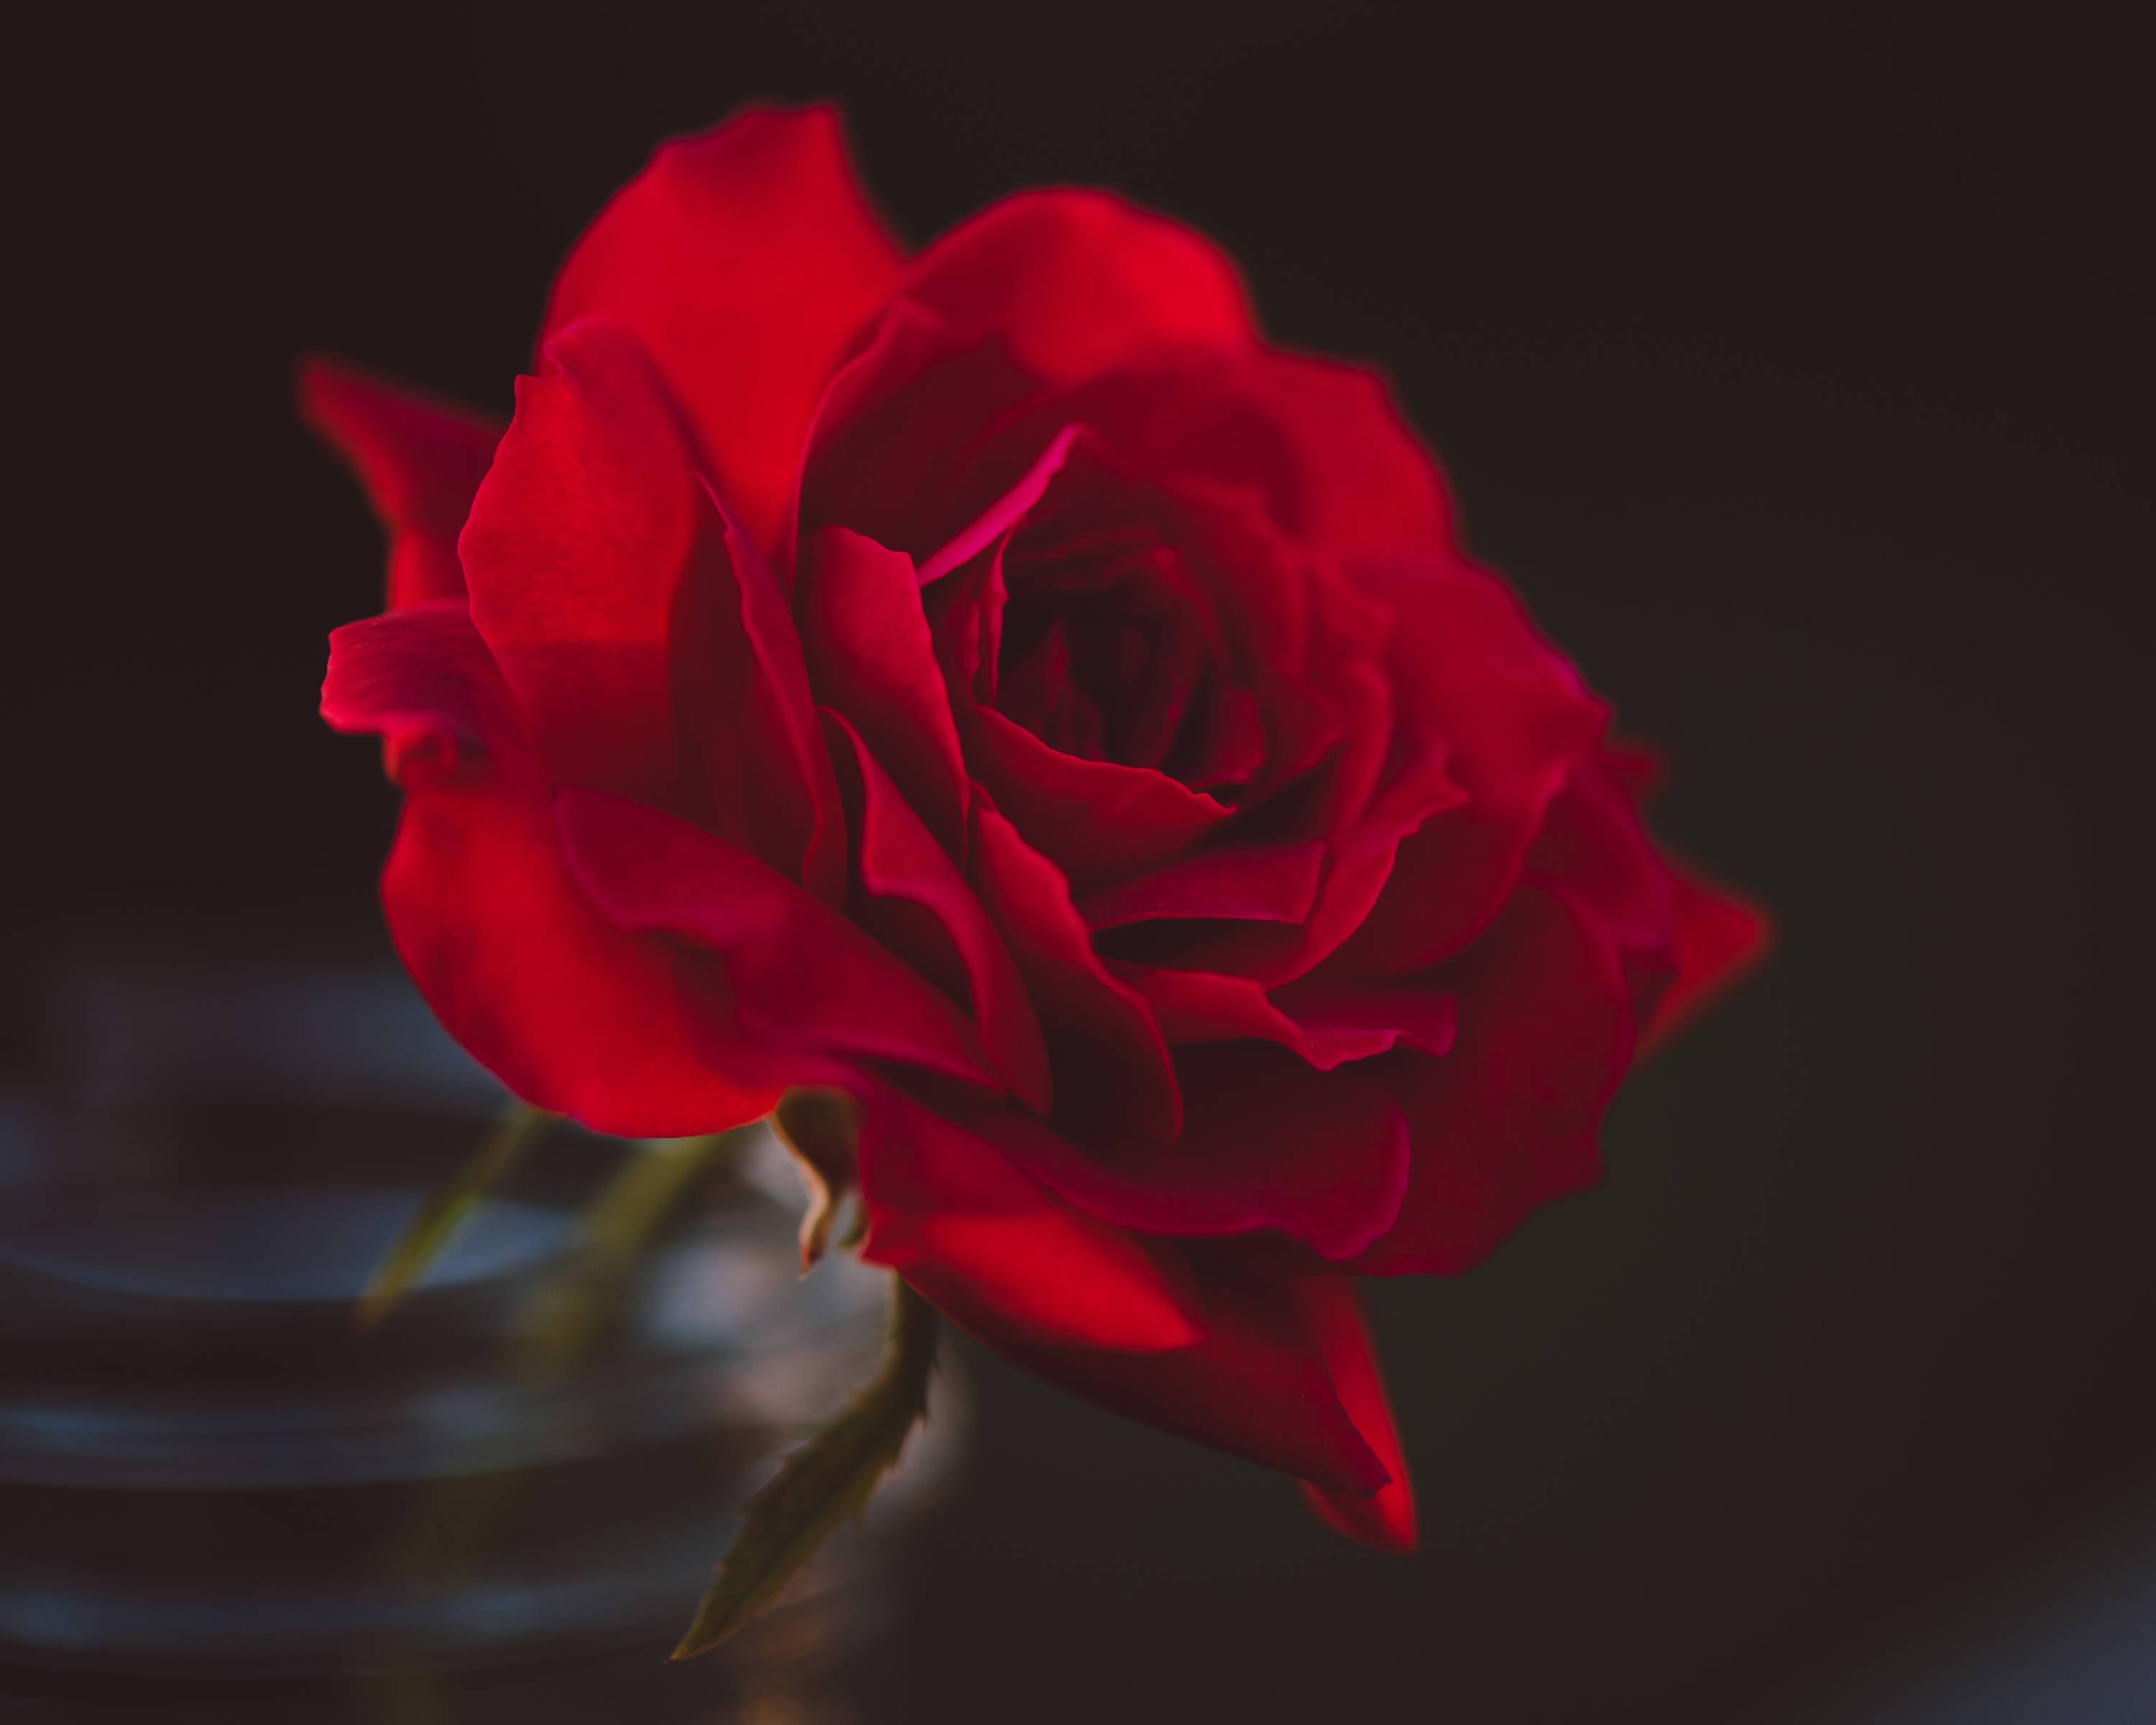 Rose Art Photography Red Rose Red Rose Photography Red Rose For Latest Red Rose Wall Art (View 20 of 20)